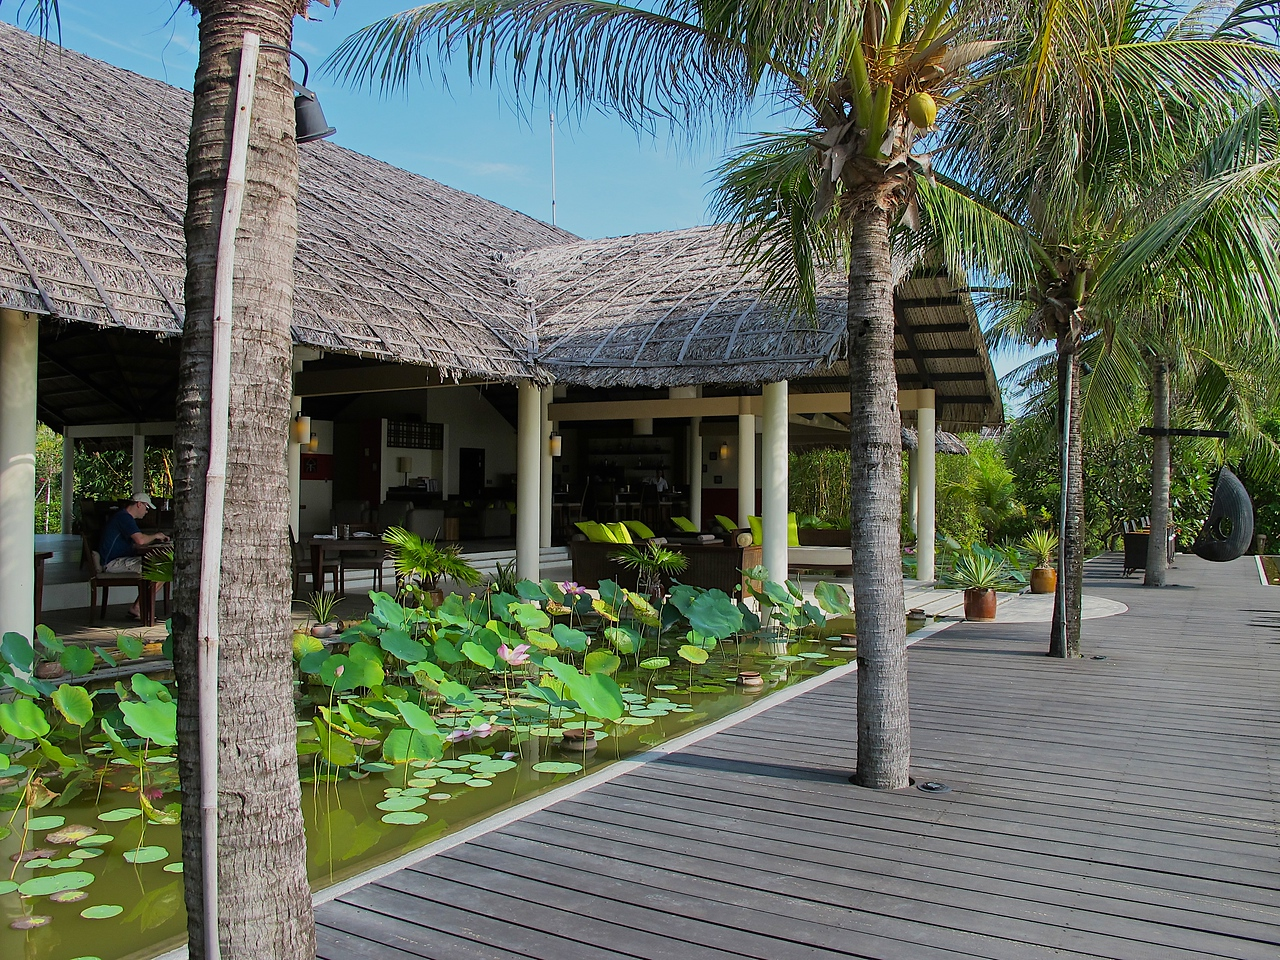 On the ocean side of the main building is a large lotus and water lilly pond between it and the pool.